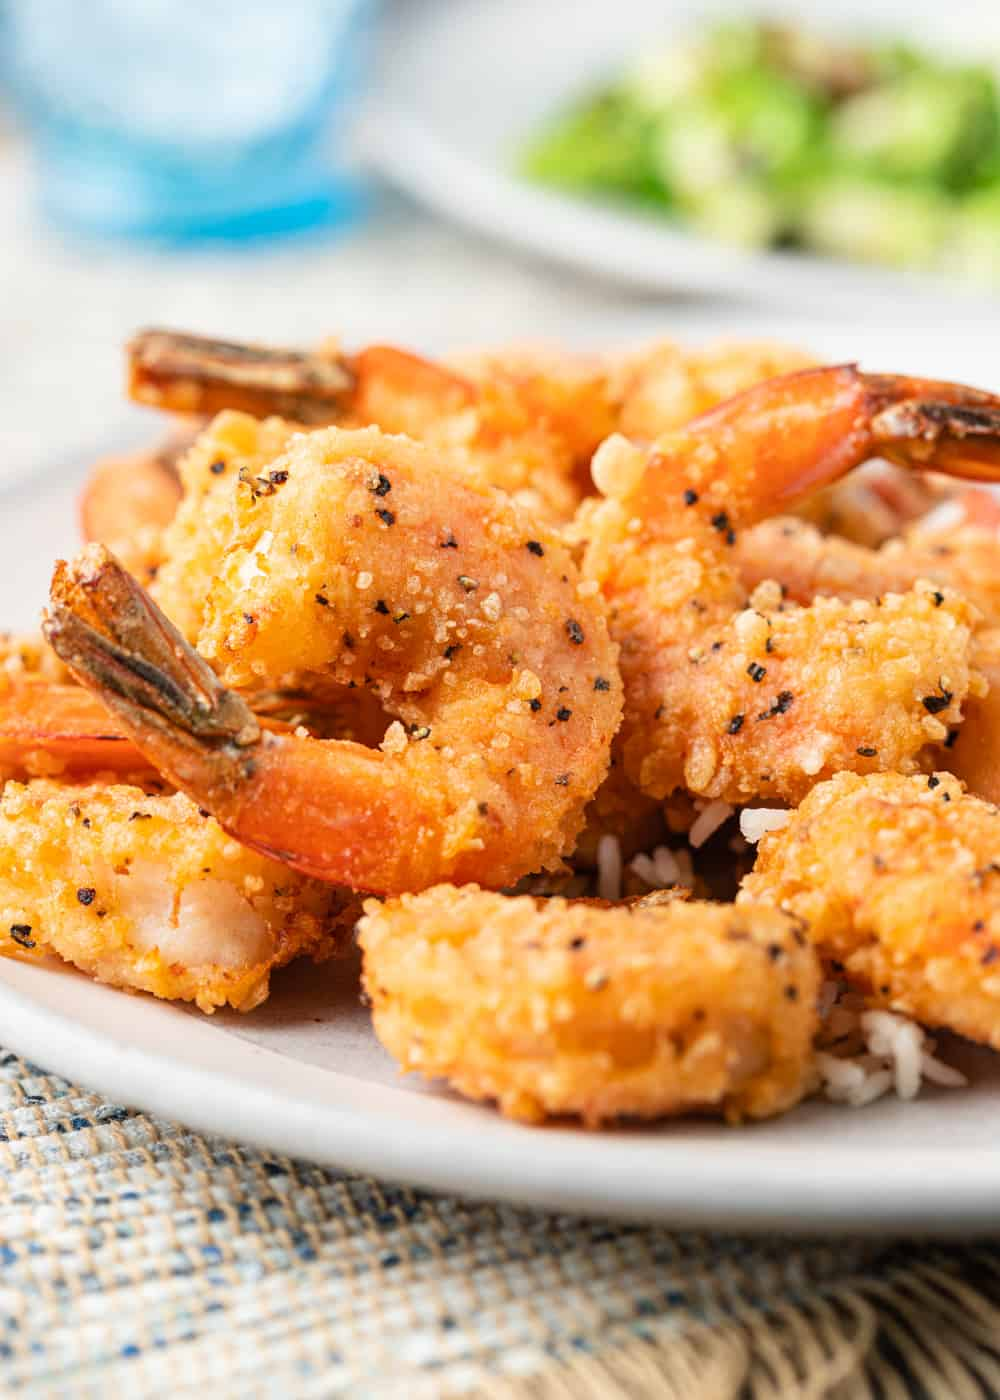 crispy fried shrimp on a plate